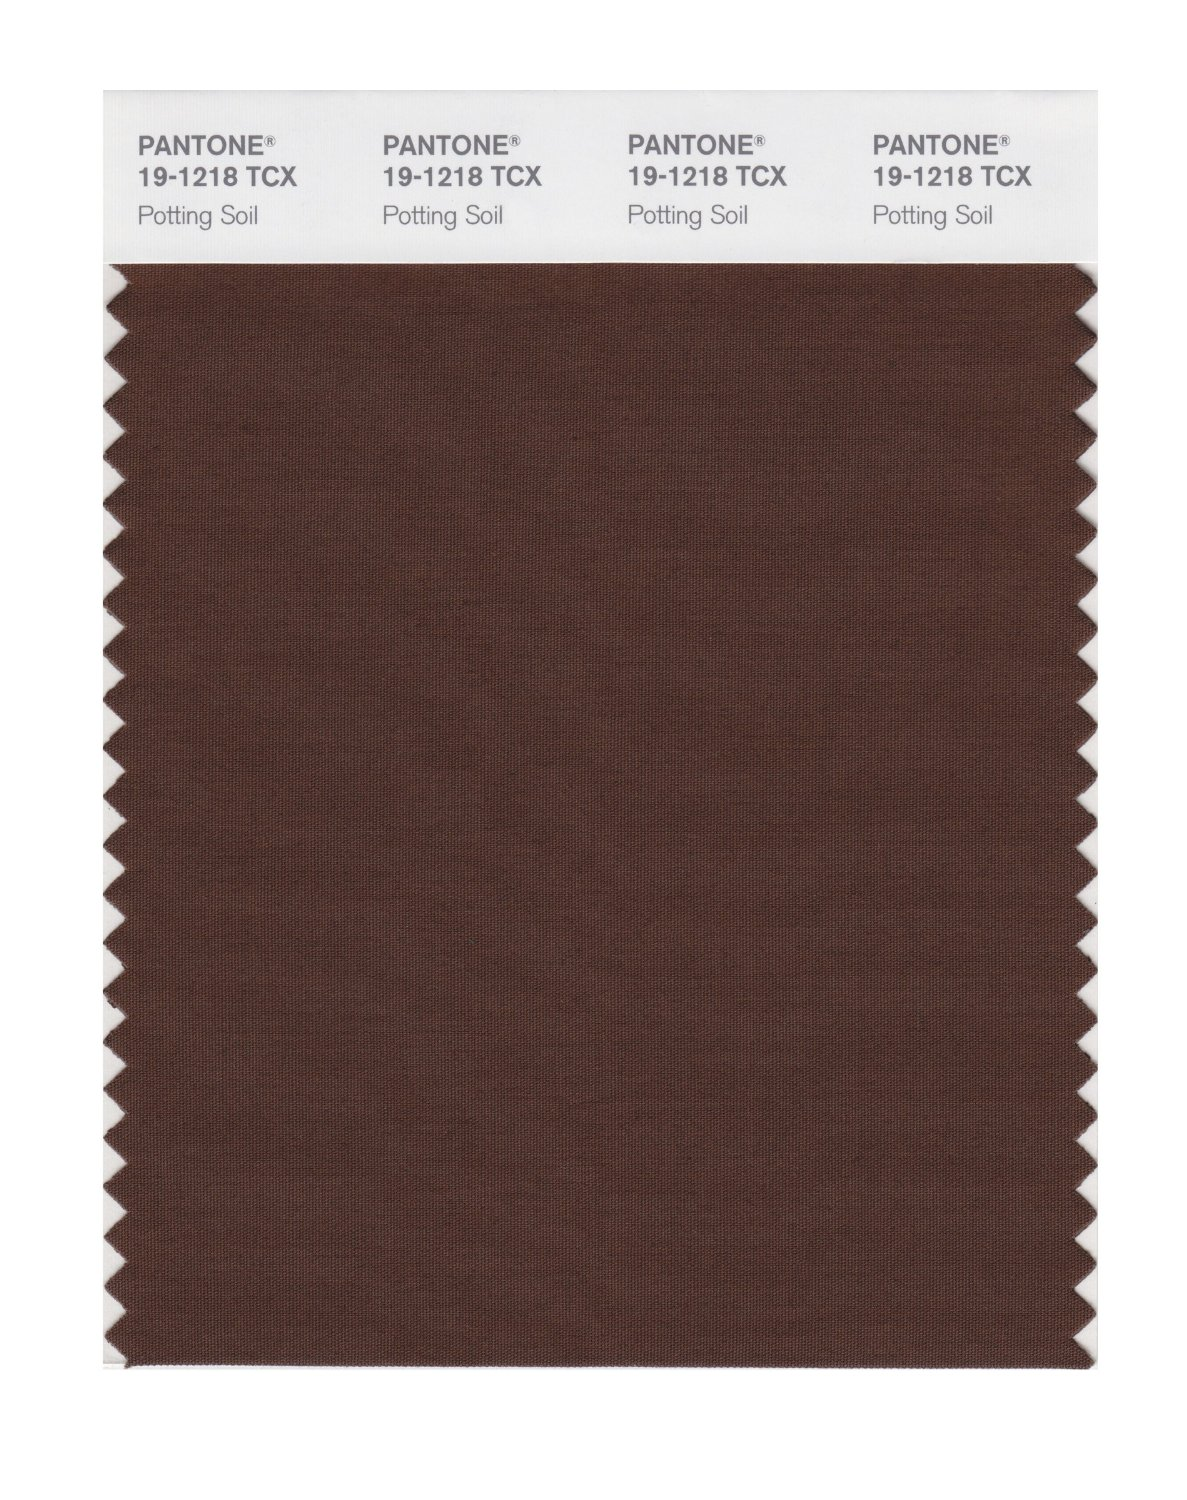 Pantone Smart Swatch 19-1218 Potting Soil